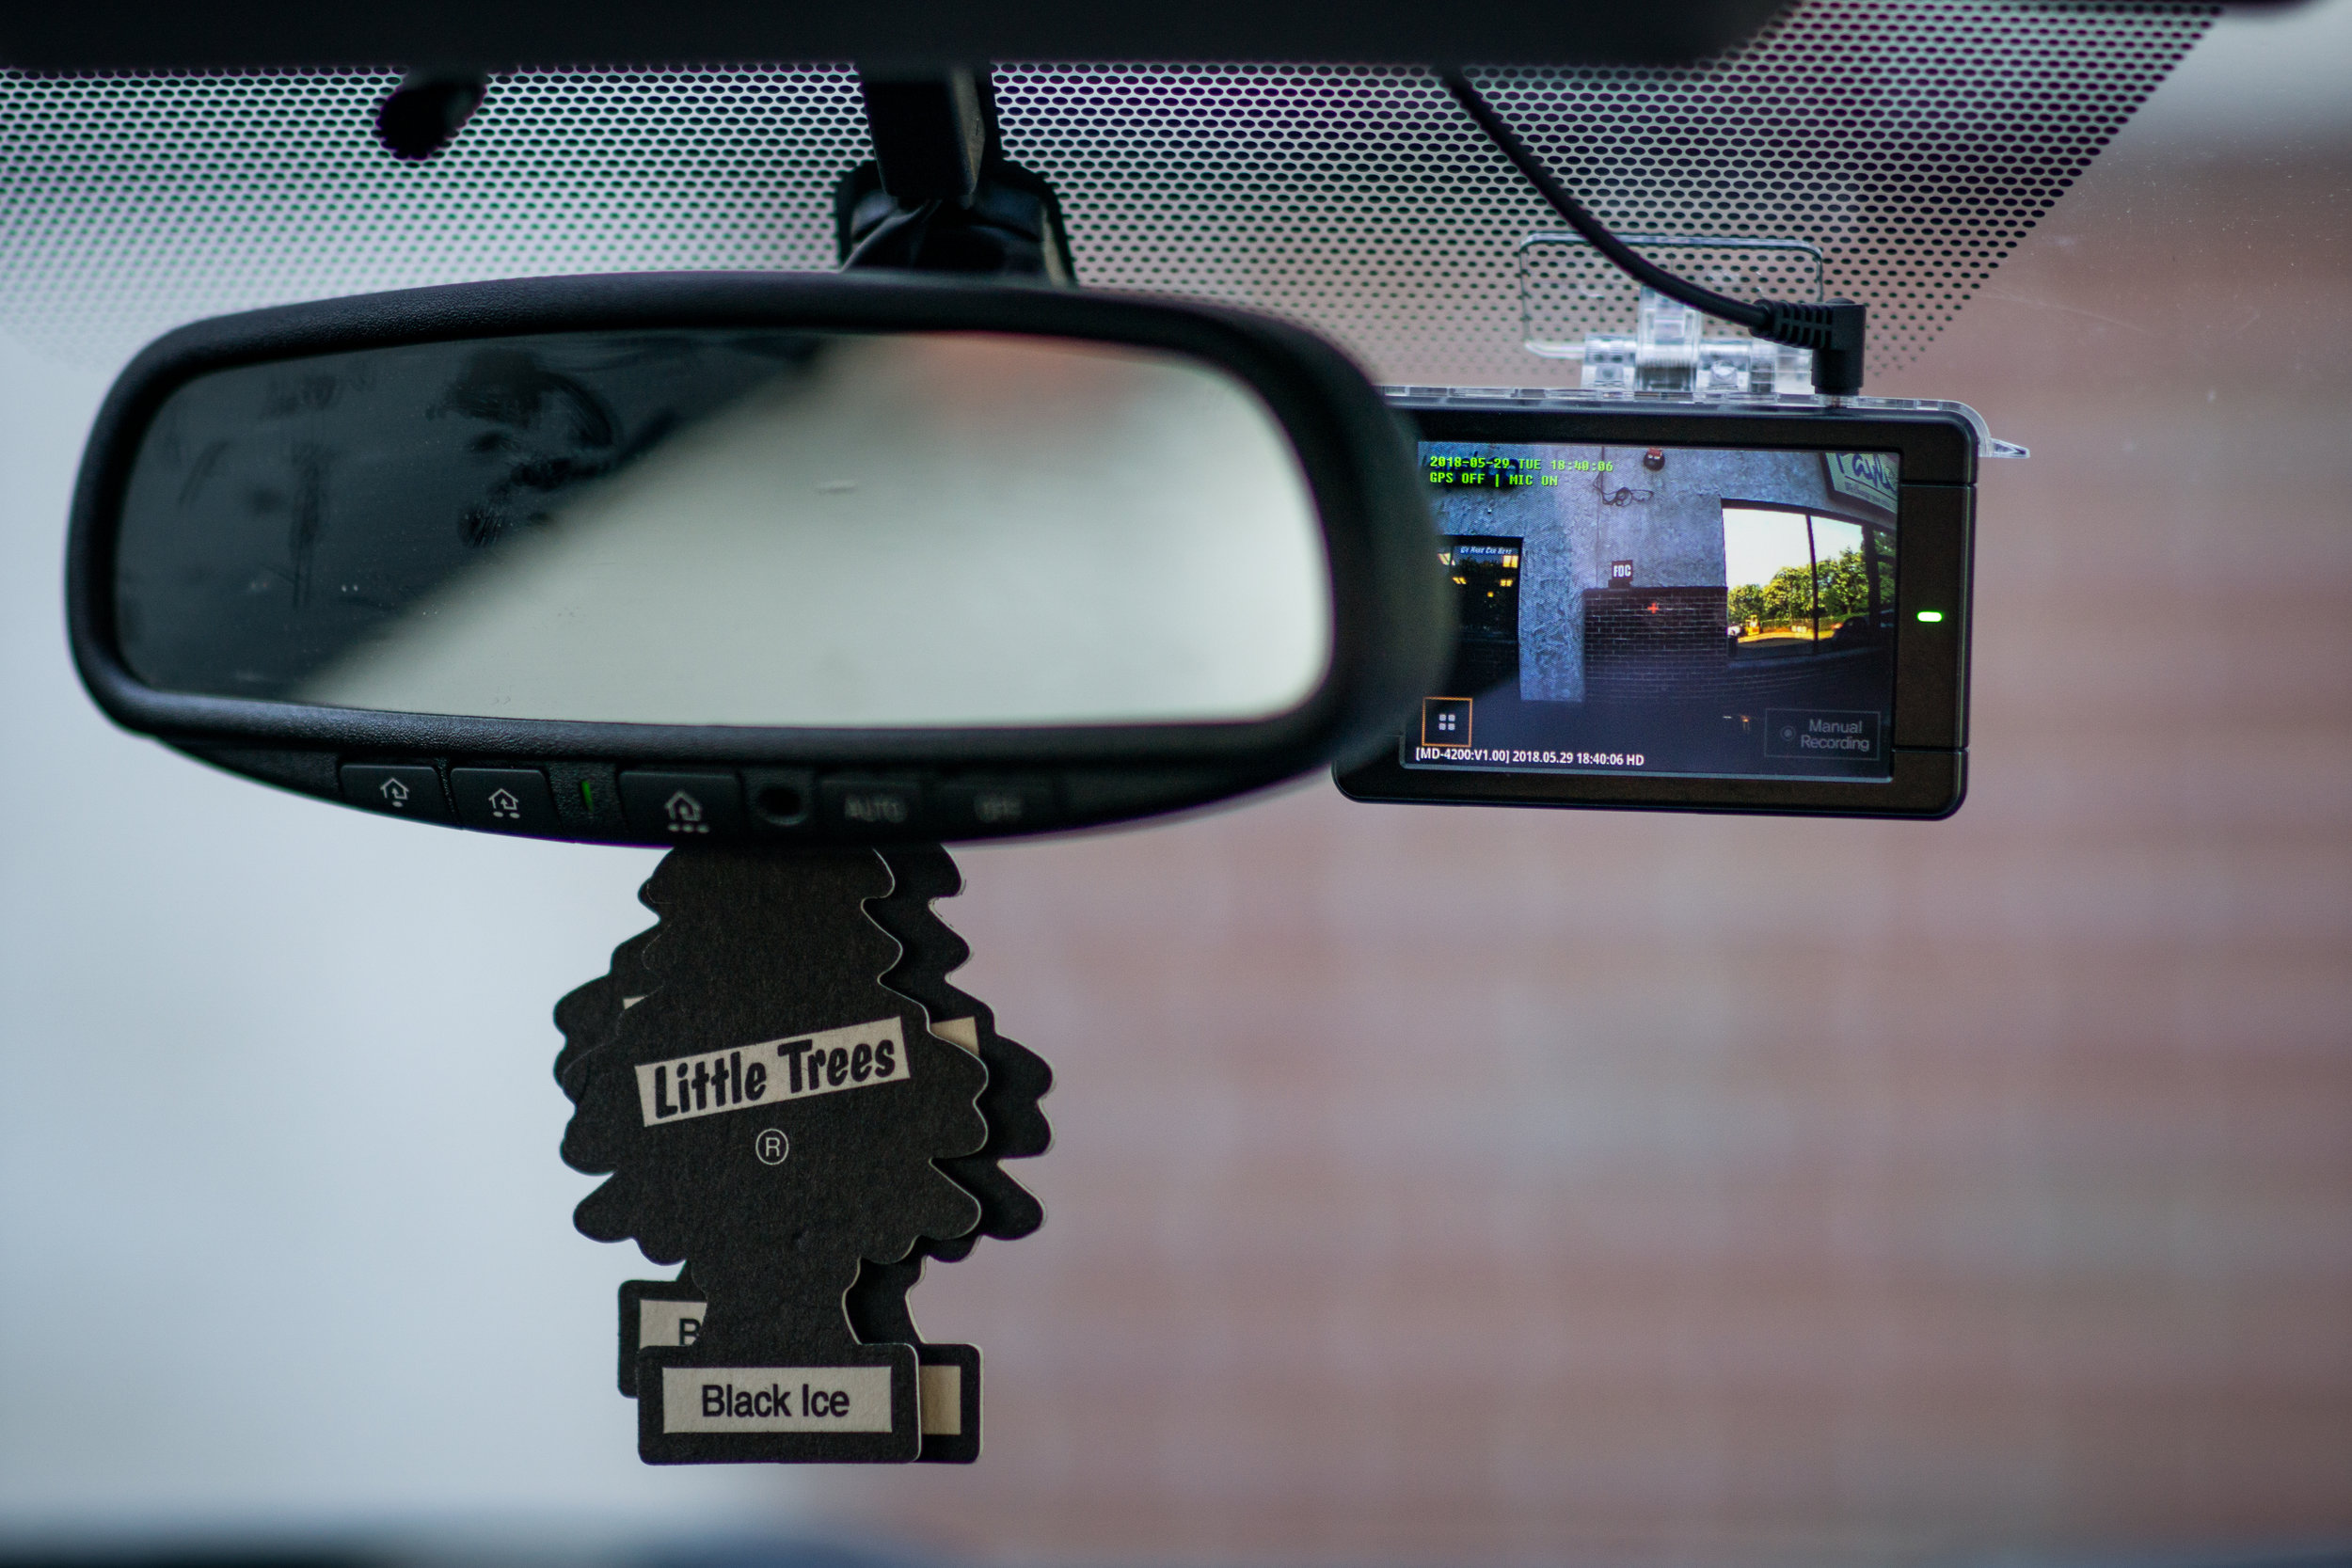 - All cameras are professionally installed to the vehicle in house. Our expert staff will mount and wire your camera cleanly and tucked out of sight for a clean and distraction free experience.